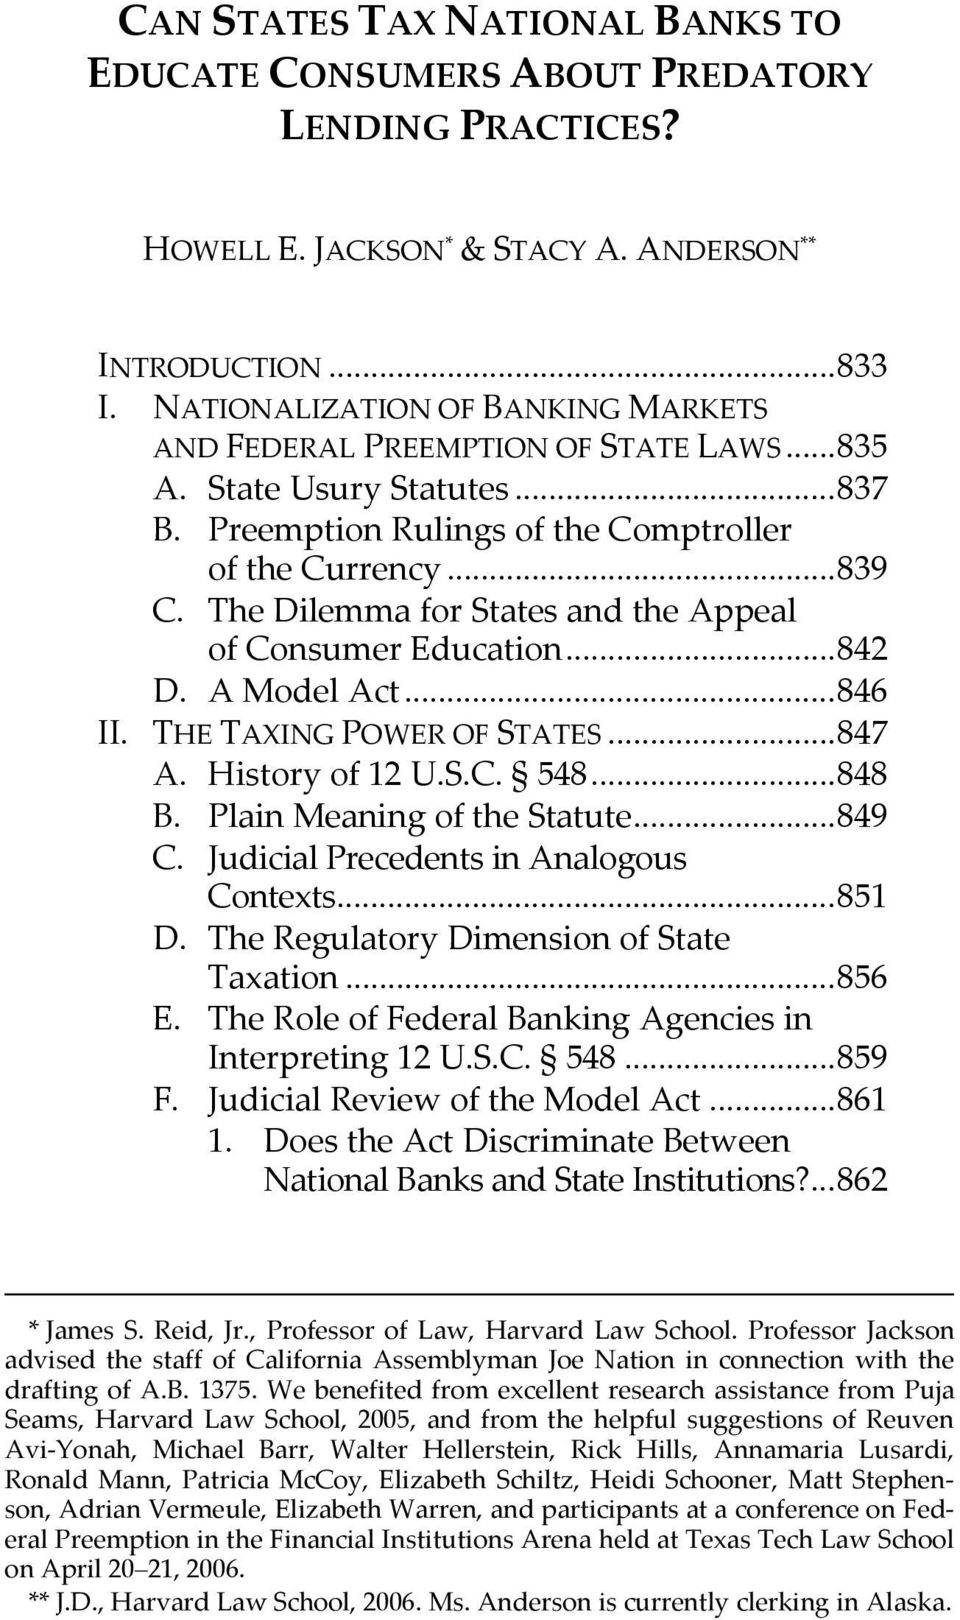 The Dilemma for States and the Appeal of Consumer Education...842 D. A Model Act...846 II. THE TAXING POWER OF STATES...847 A. History of 12 U.S.C. 548...848 B. Plain Meaning of the Statute...849 C.